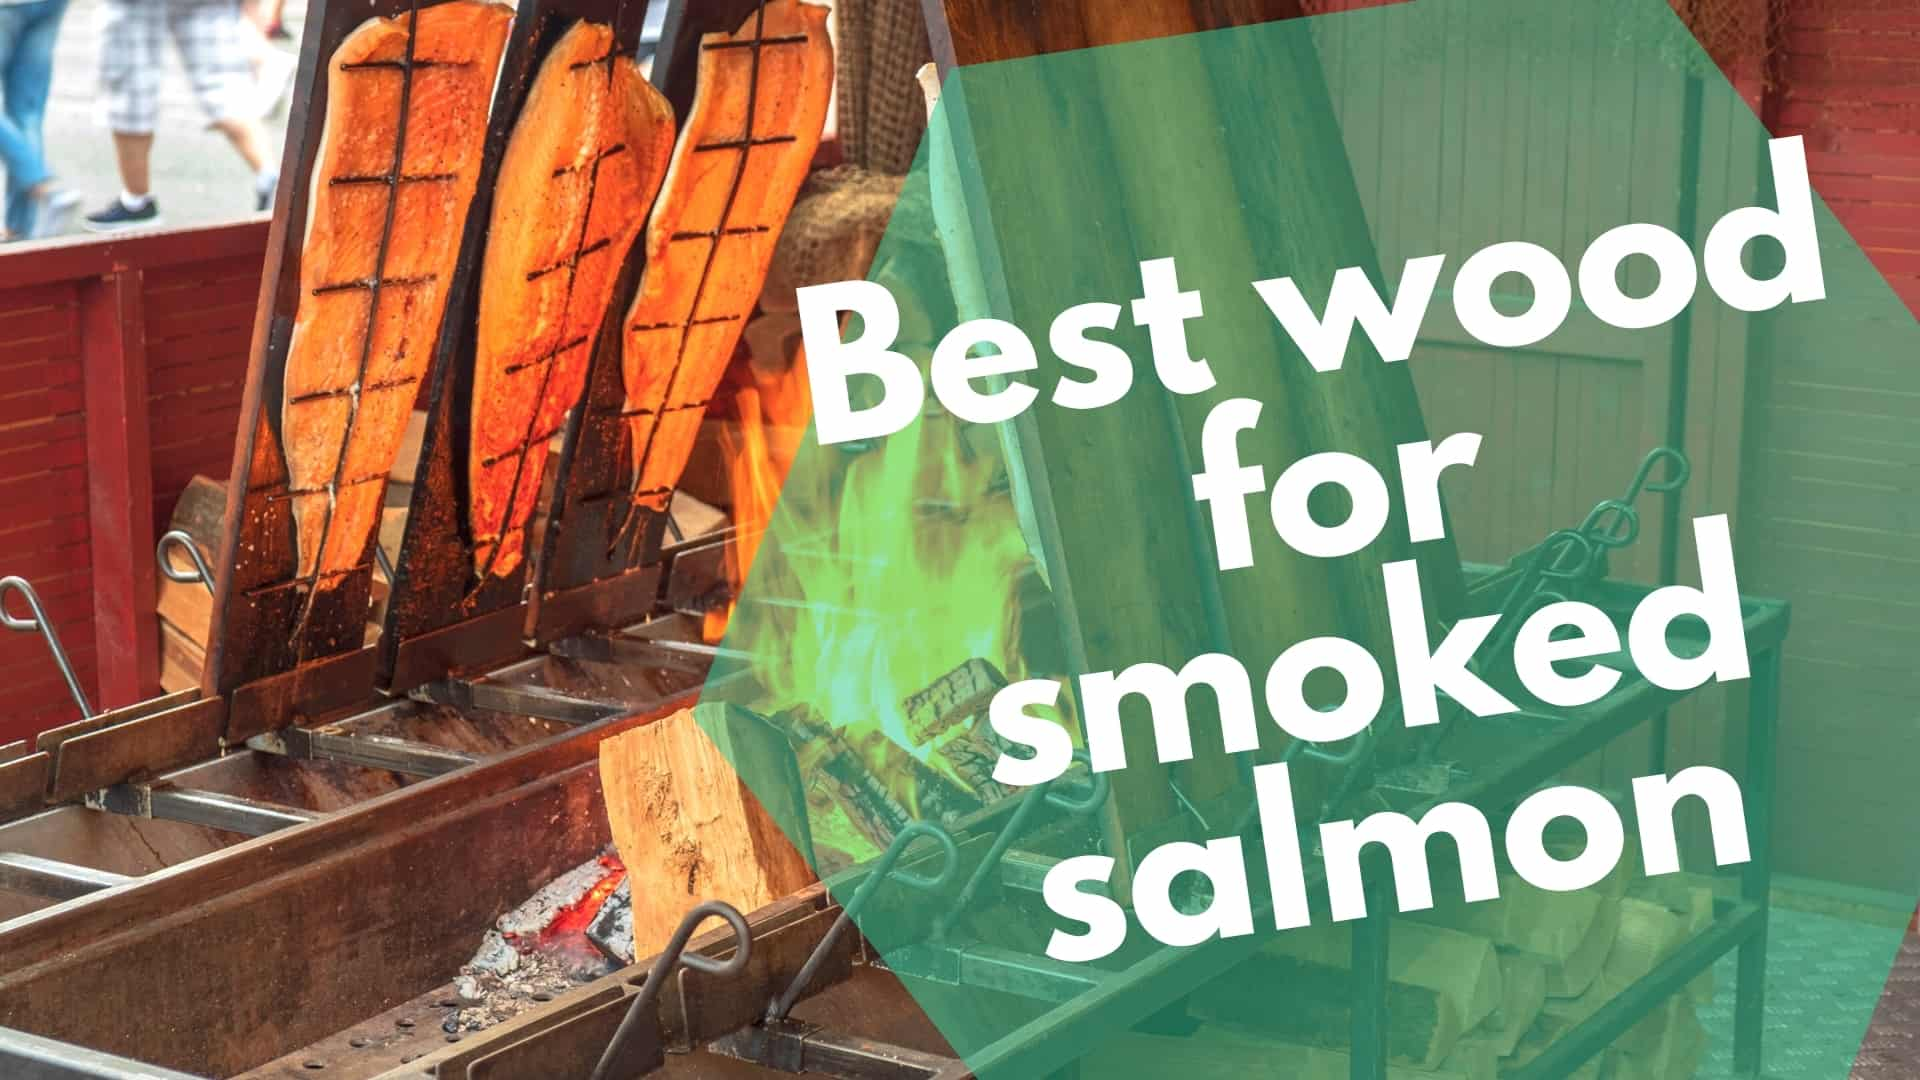 Best wood for smoking salmon + how-to & tips